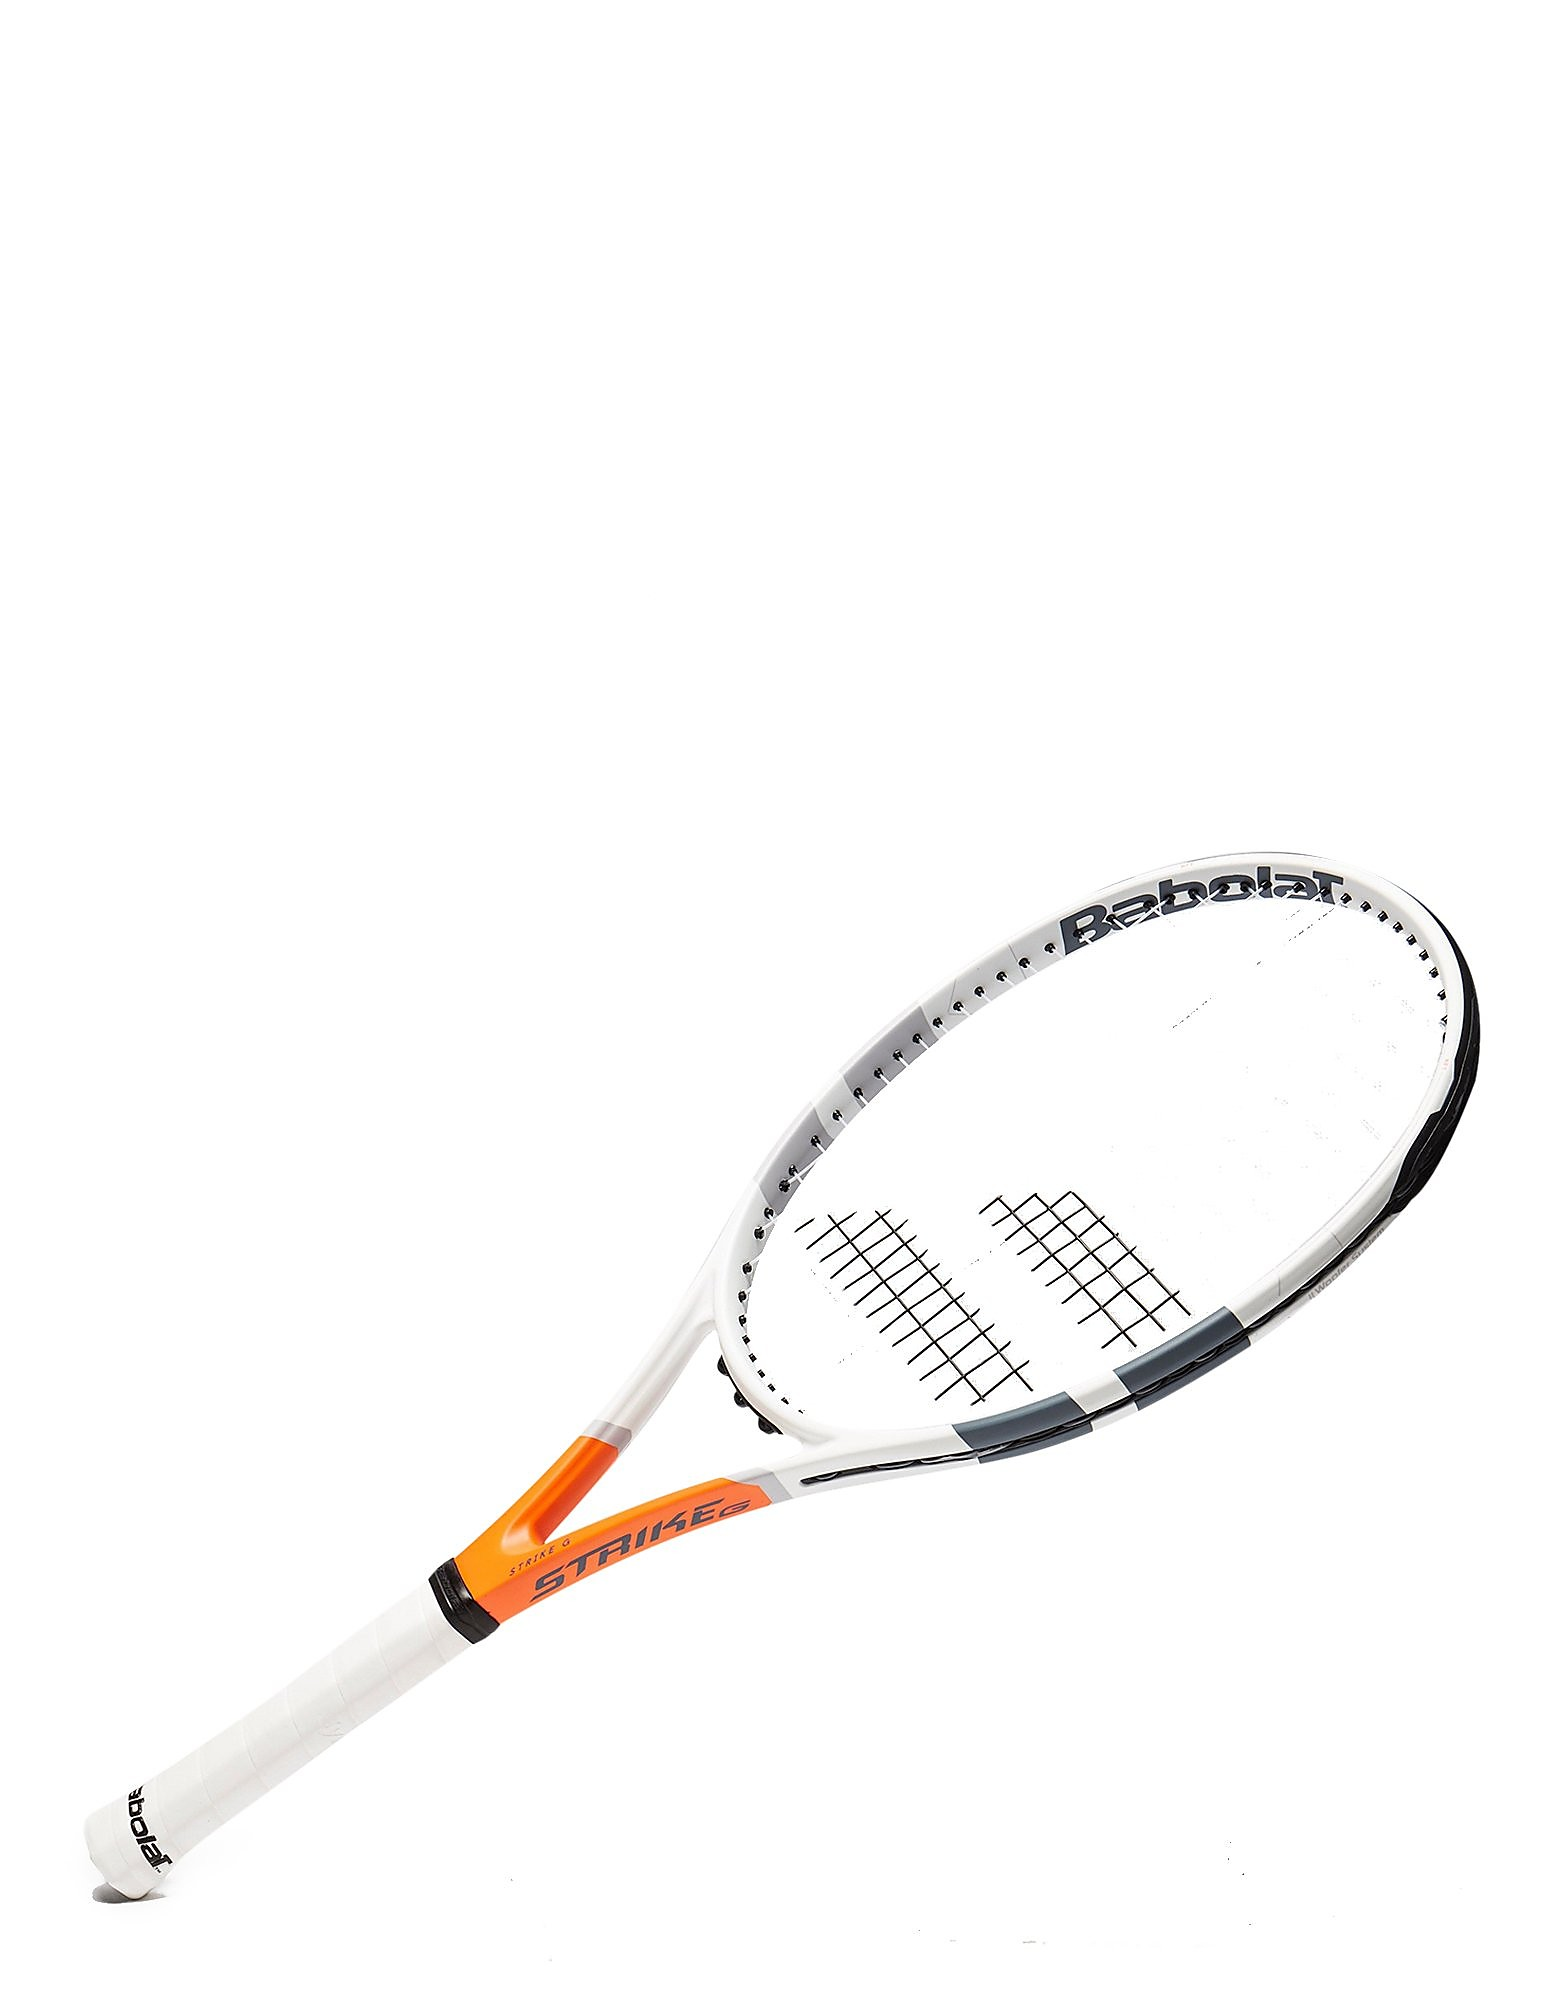 Babolat Strike Gamer Strung Tennis Racket